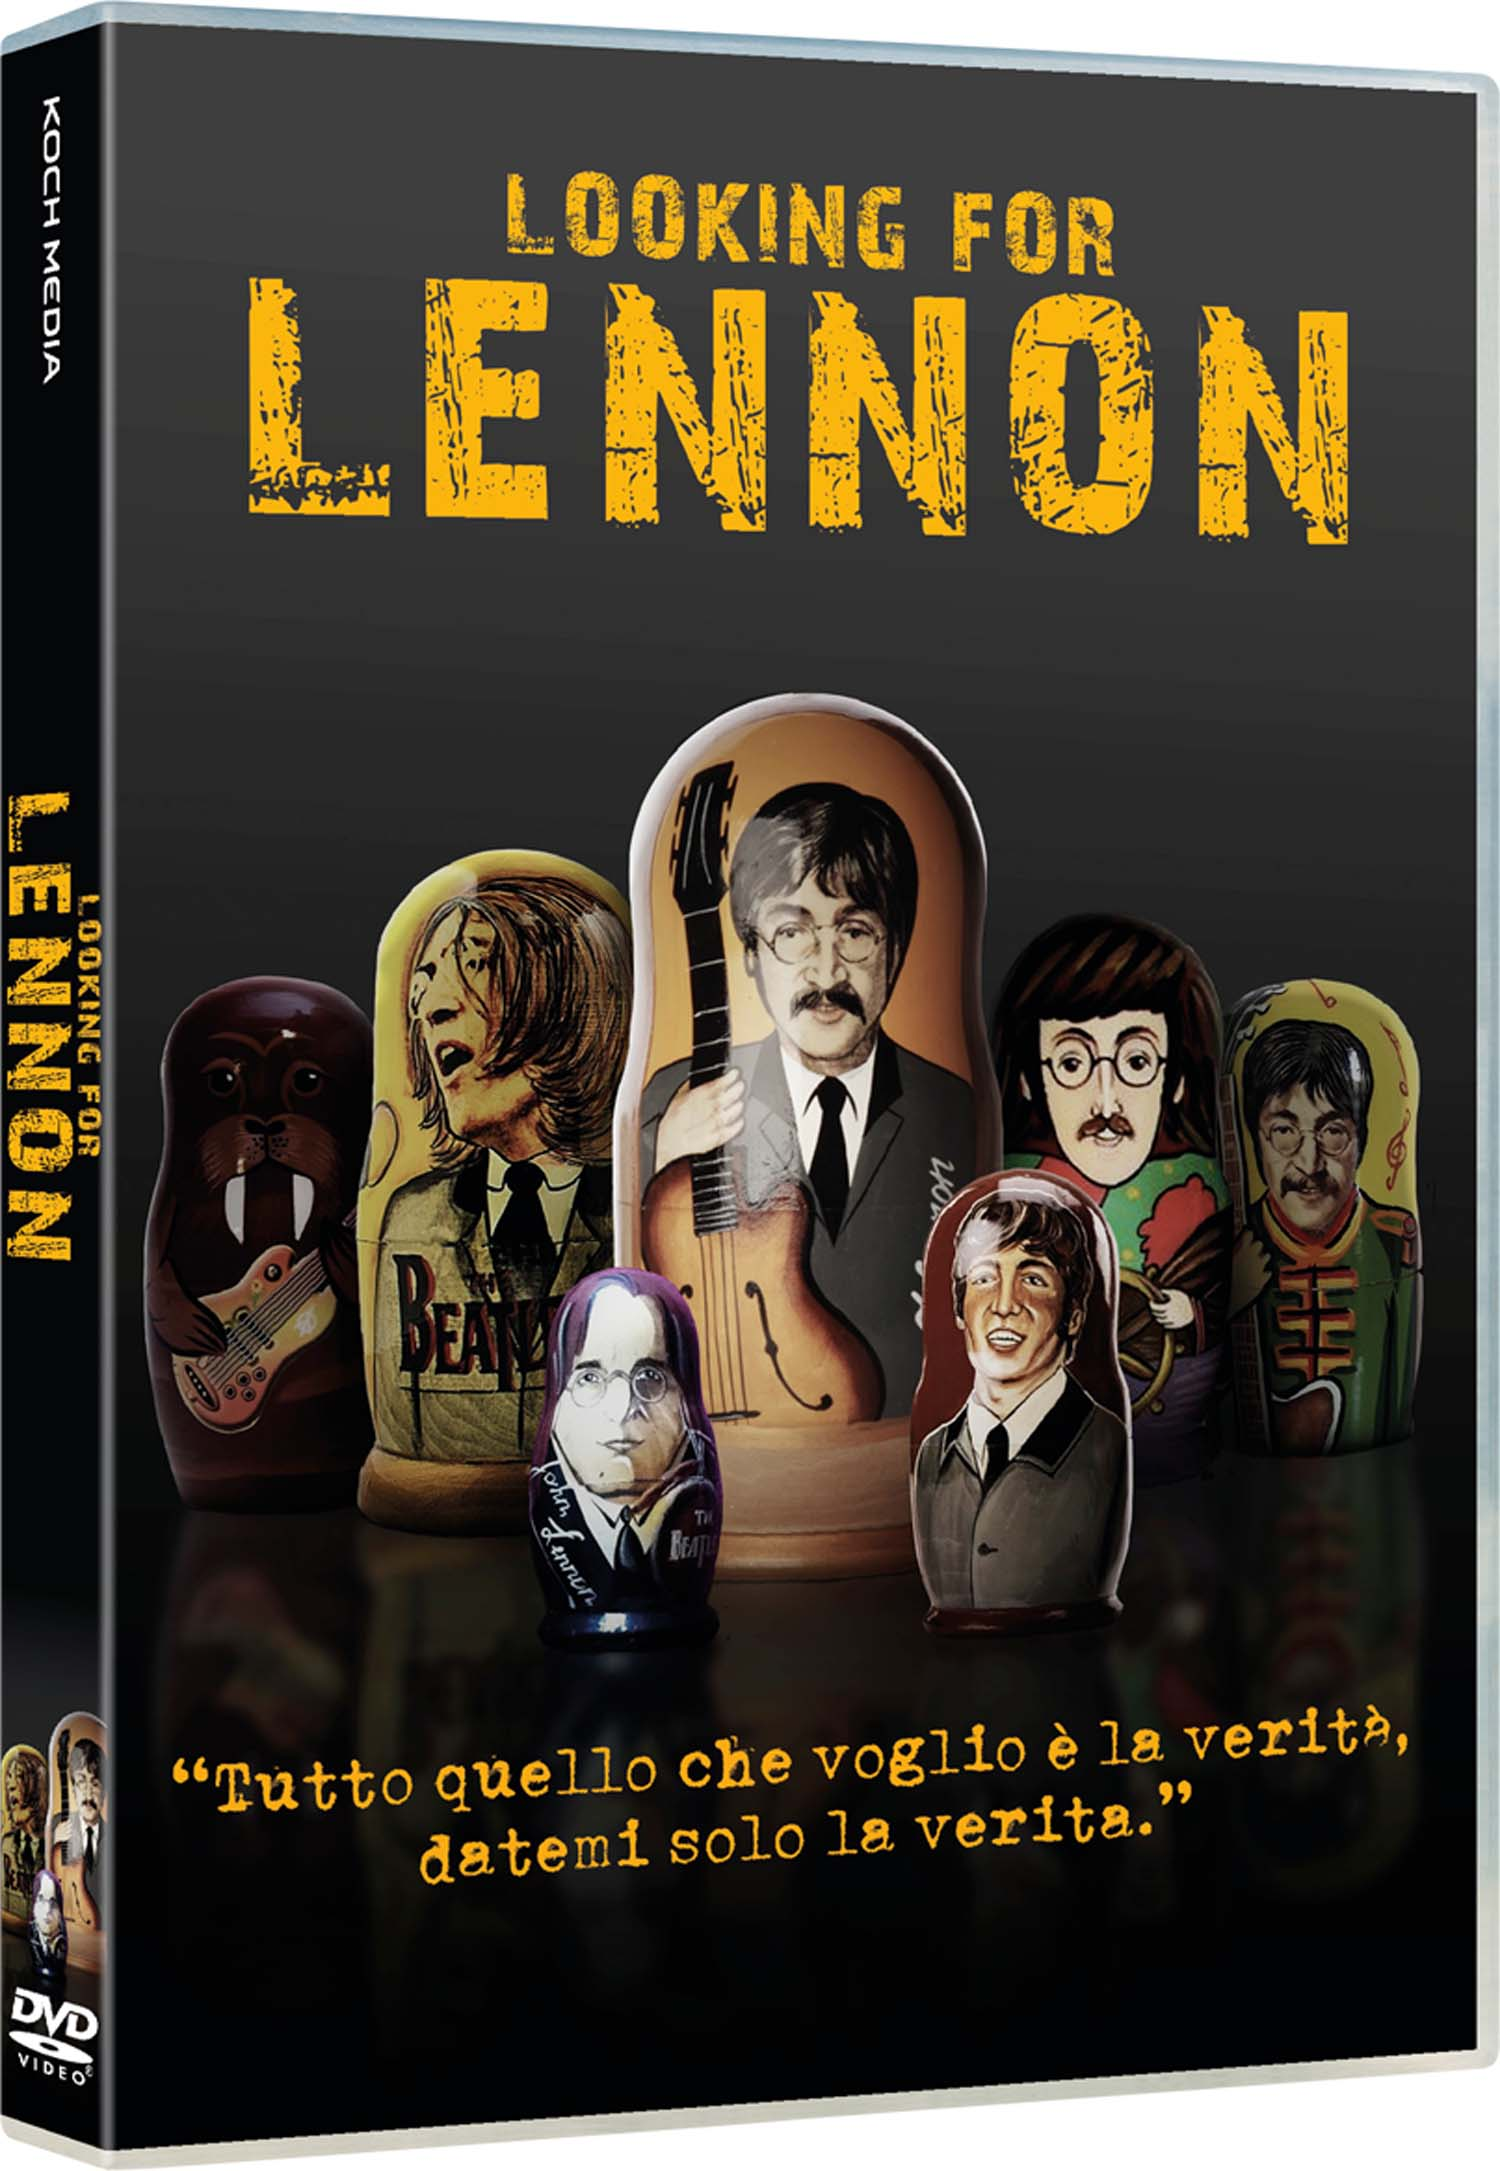 LOOKING FOR LENNON (DVD)